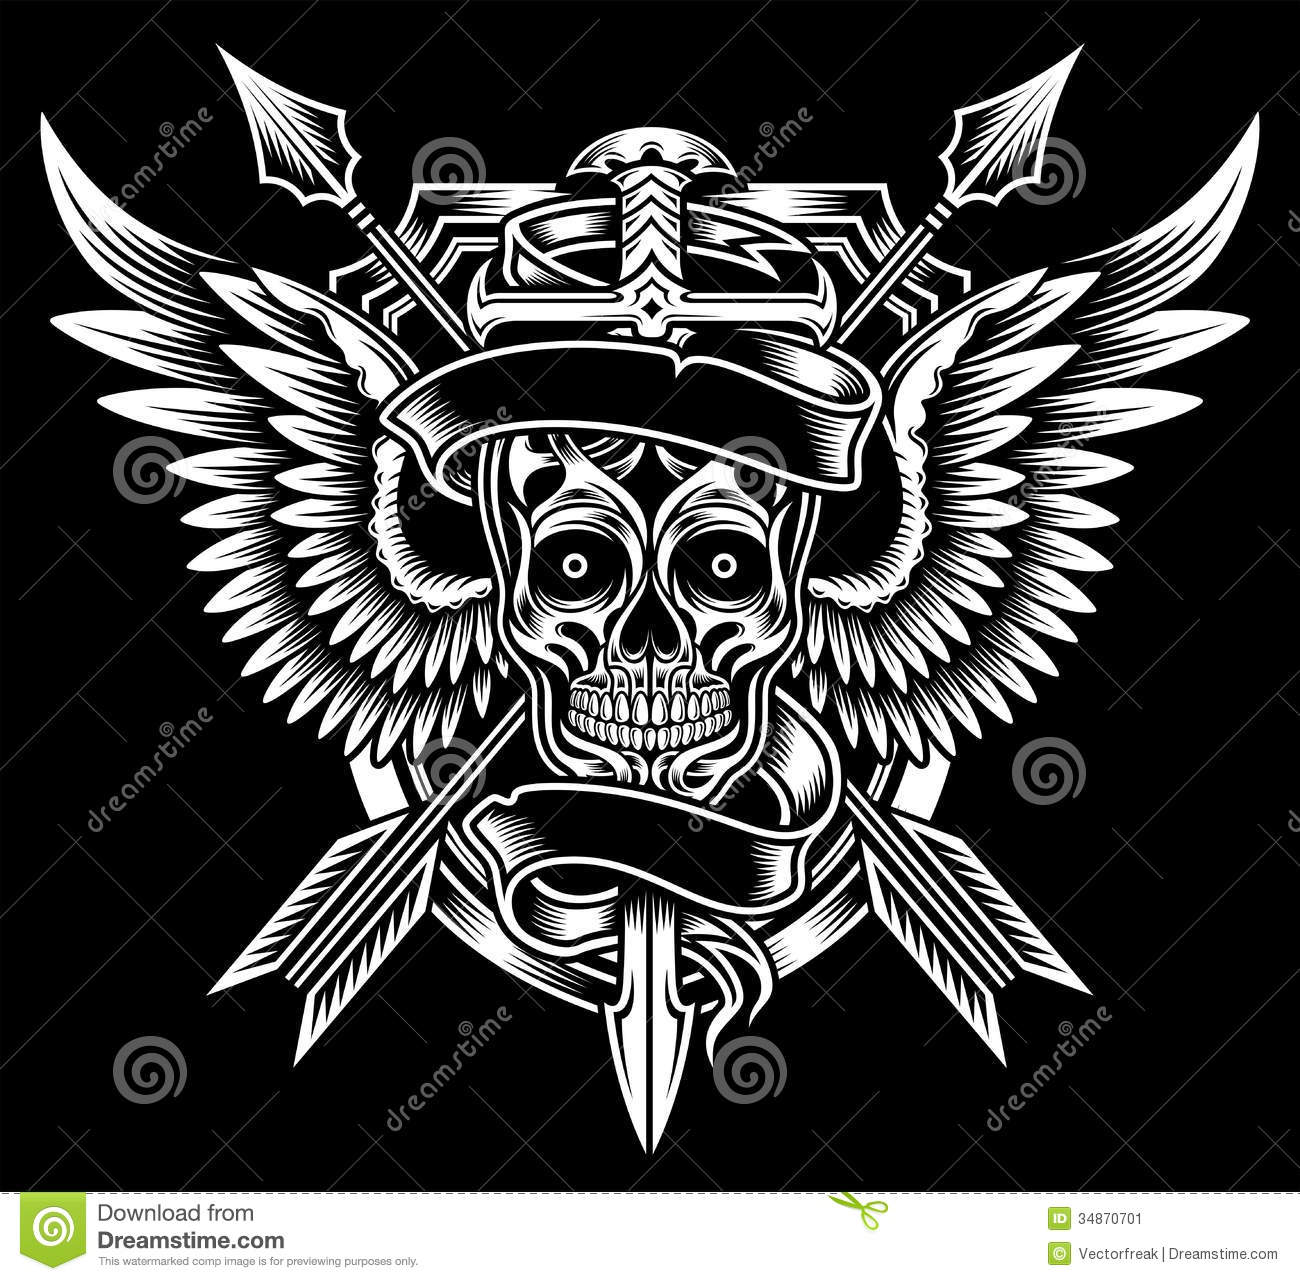 ... image suitable for crest, emblem, insignia, t-shirt design or tattoo